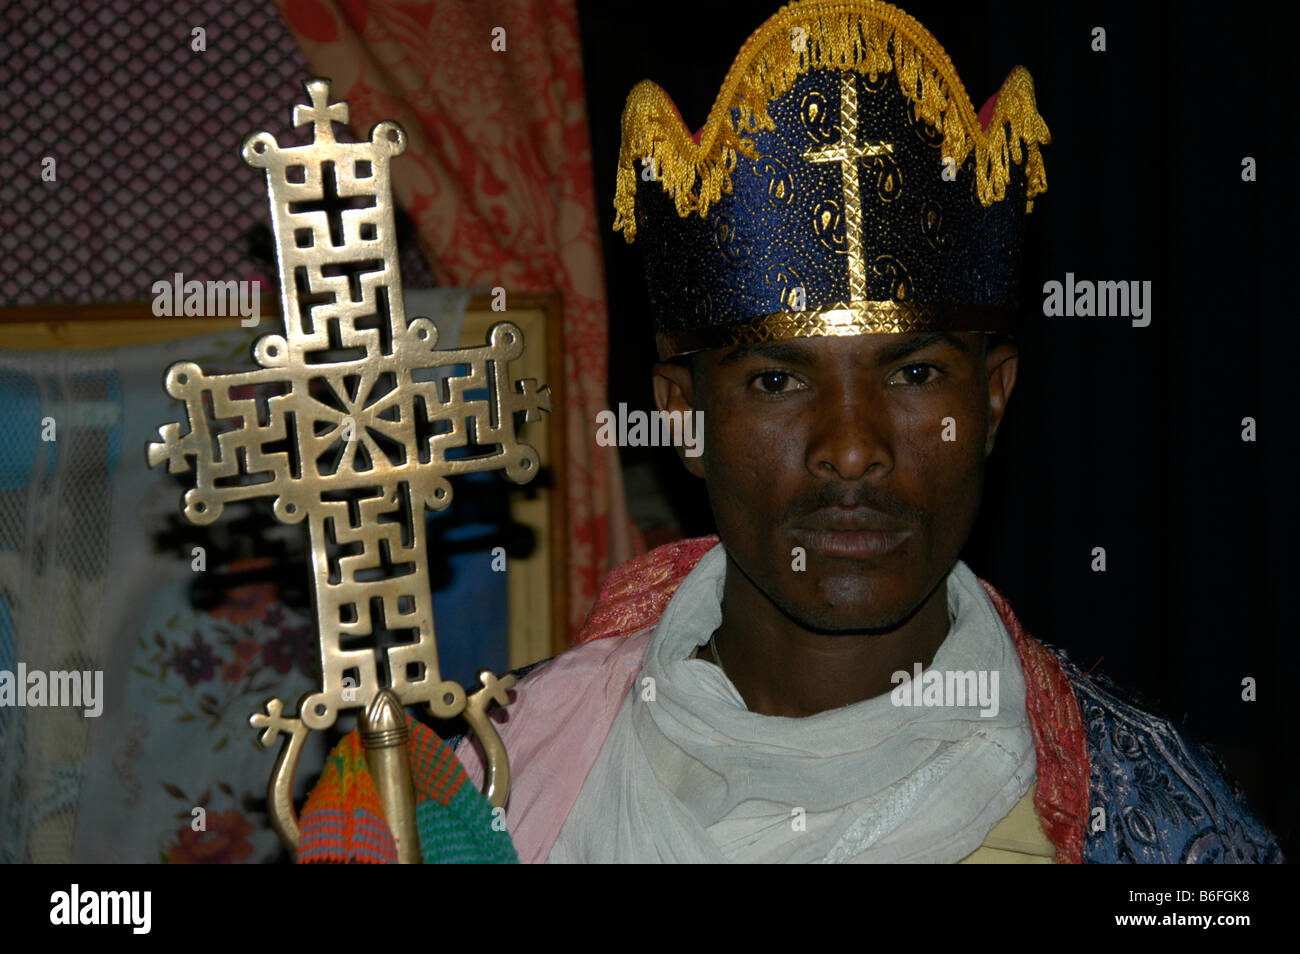 Priest wearing a headdress and holding an artfully decorated cross, Rock Church in Lalibela, Ethiopia, Africa Stock Photo